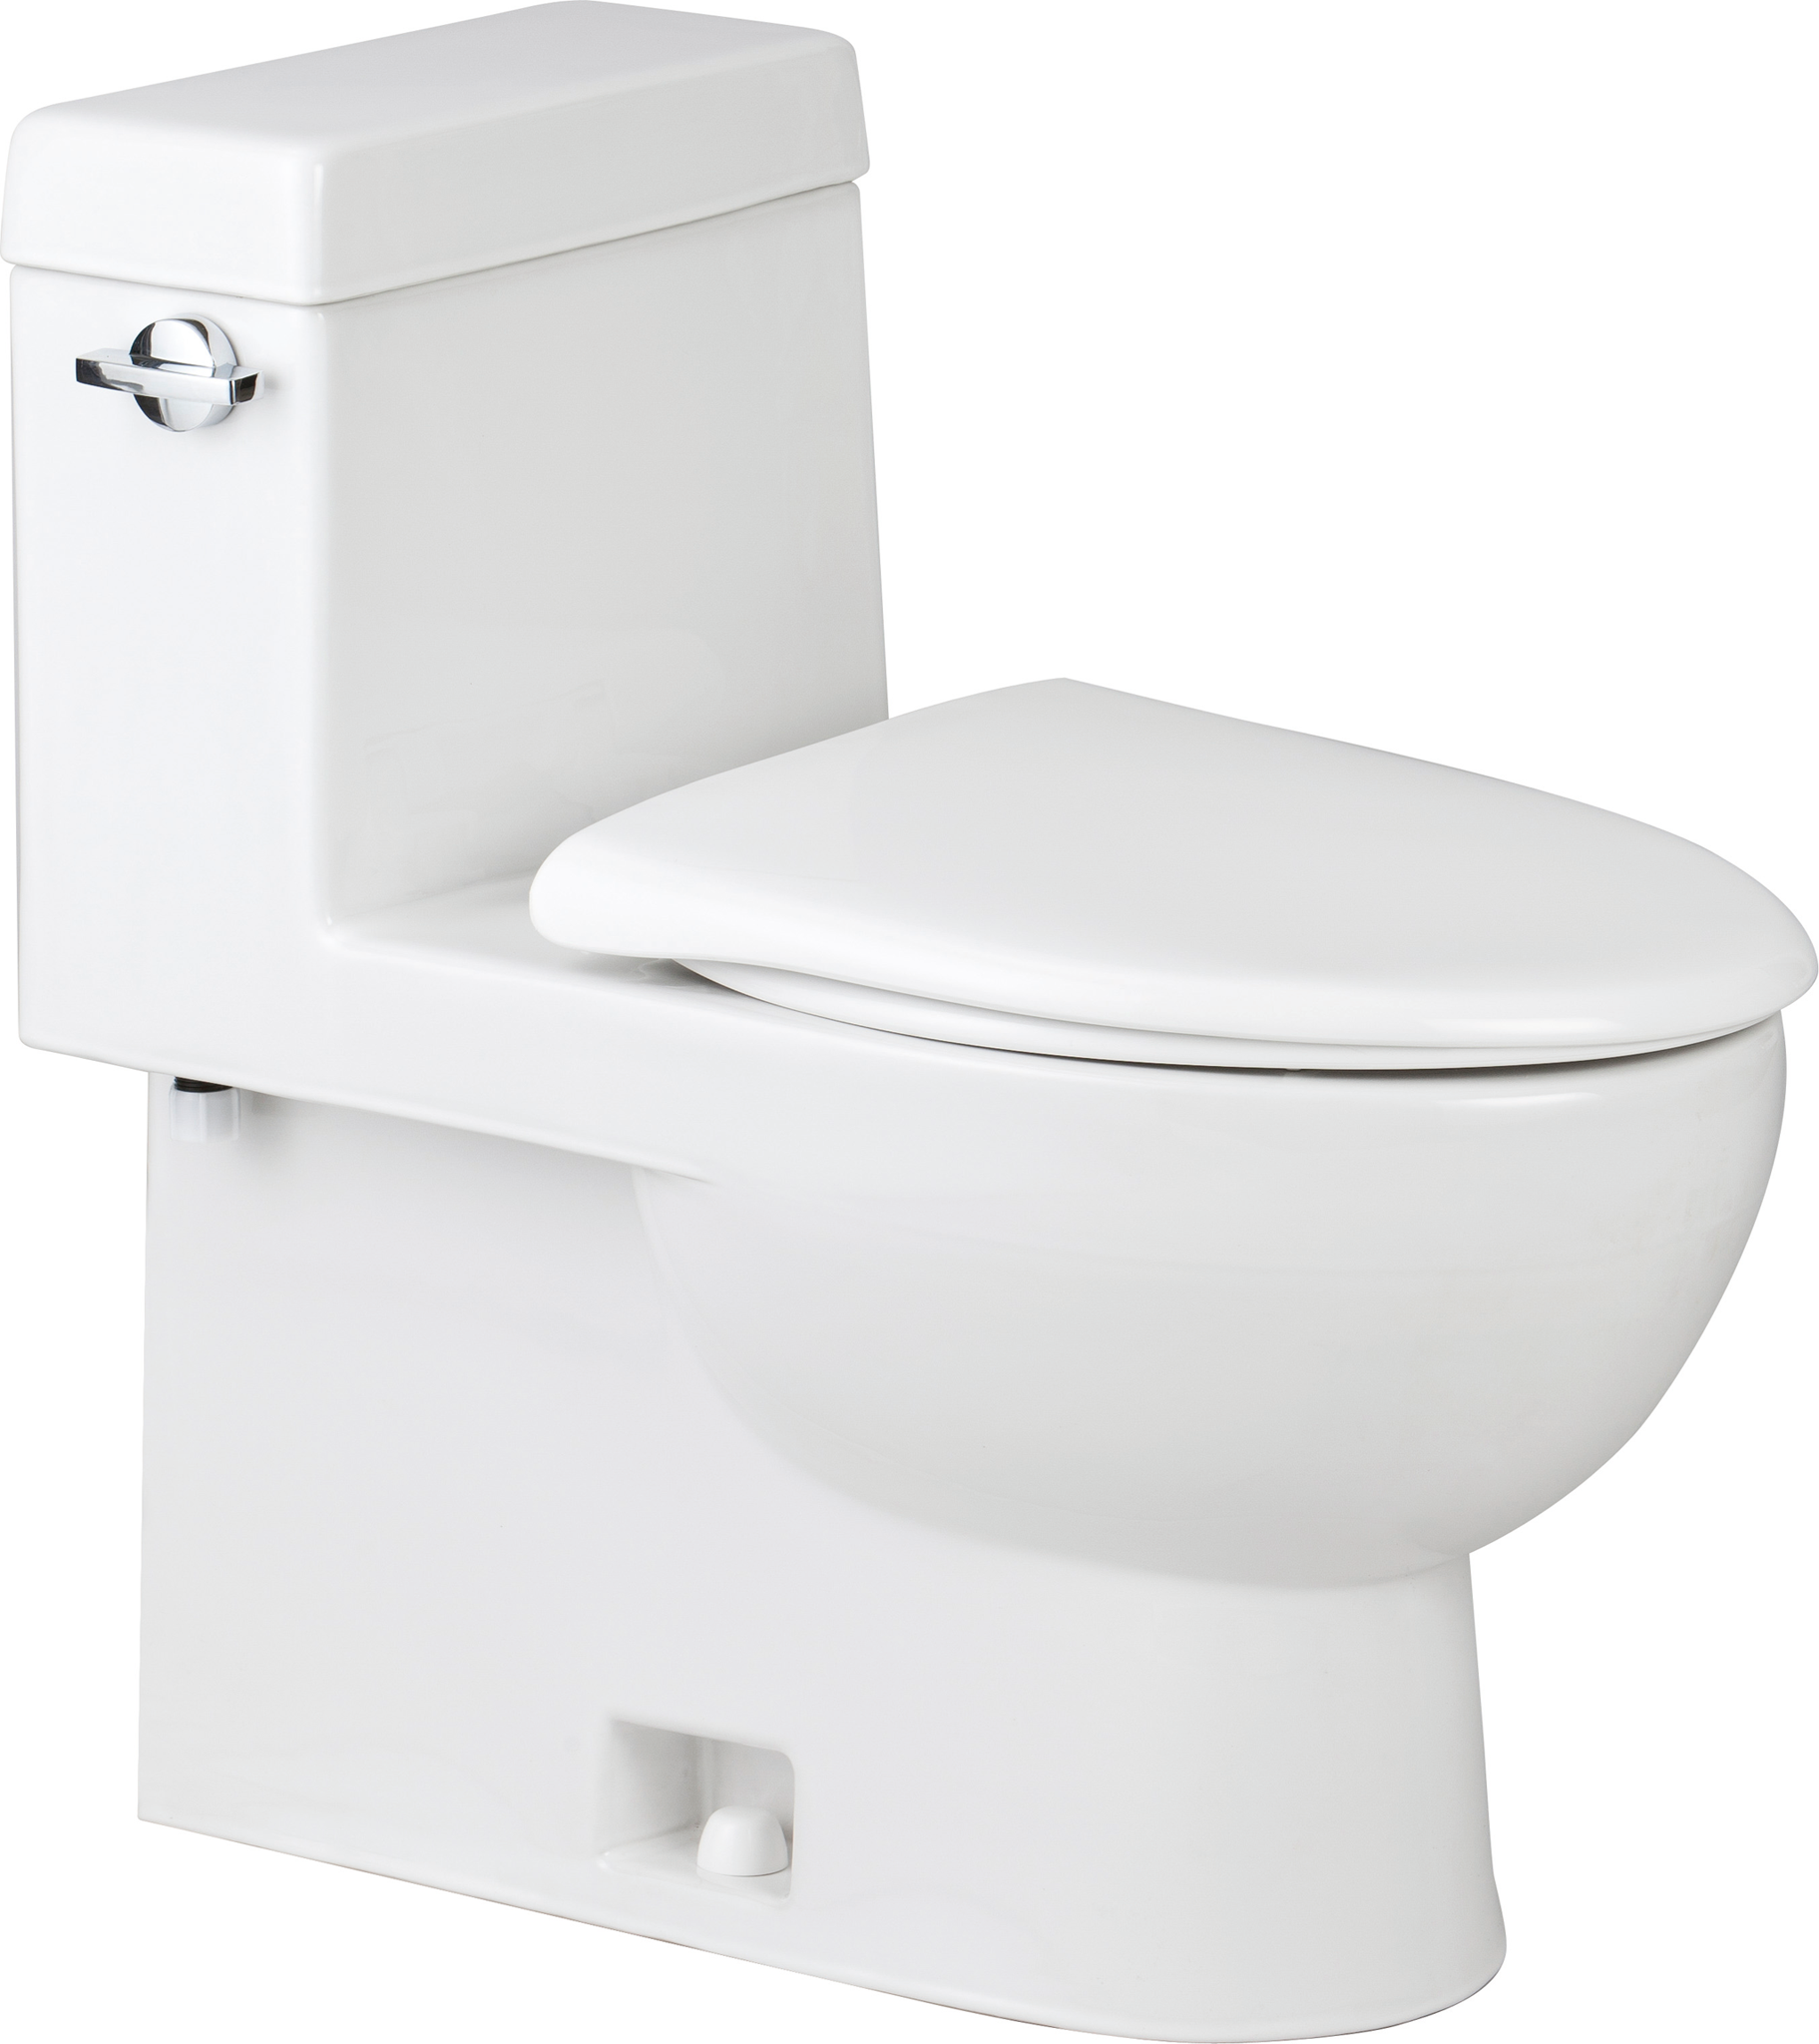 Twist wcs special wc toilets 1pc siphonic